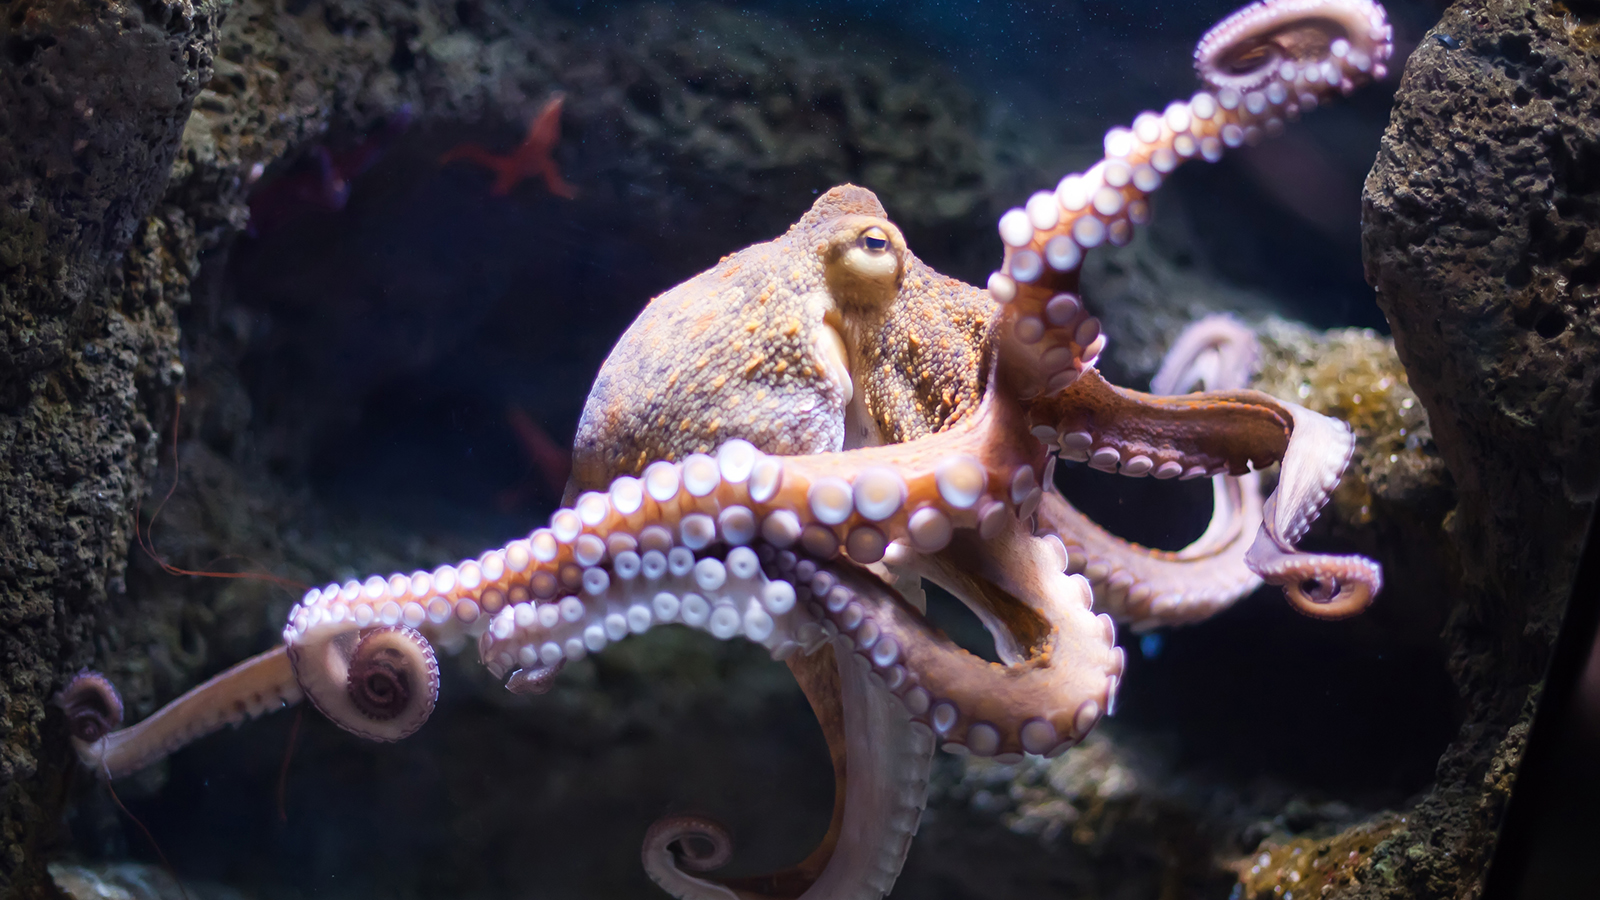 Octopus Backgrounds, Compatible - PC, Mobile, Gadgets| 1600x900 px